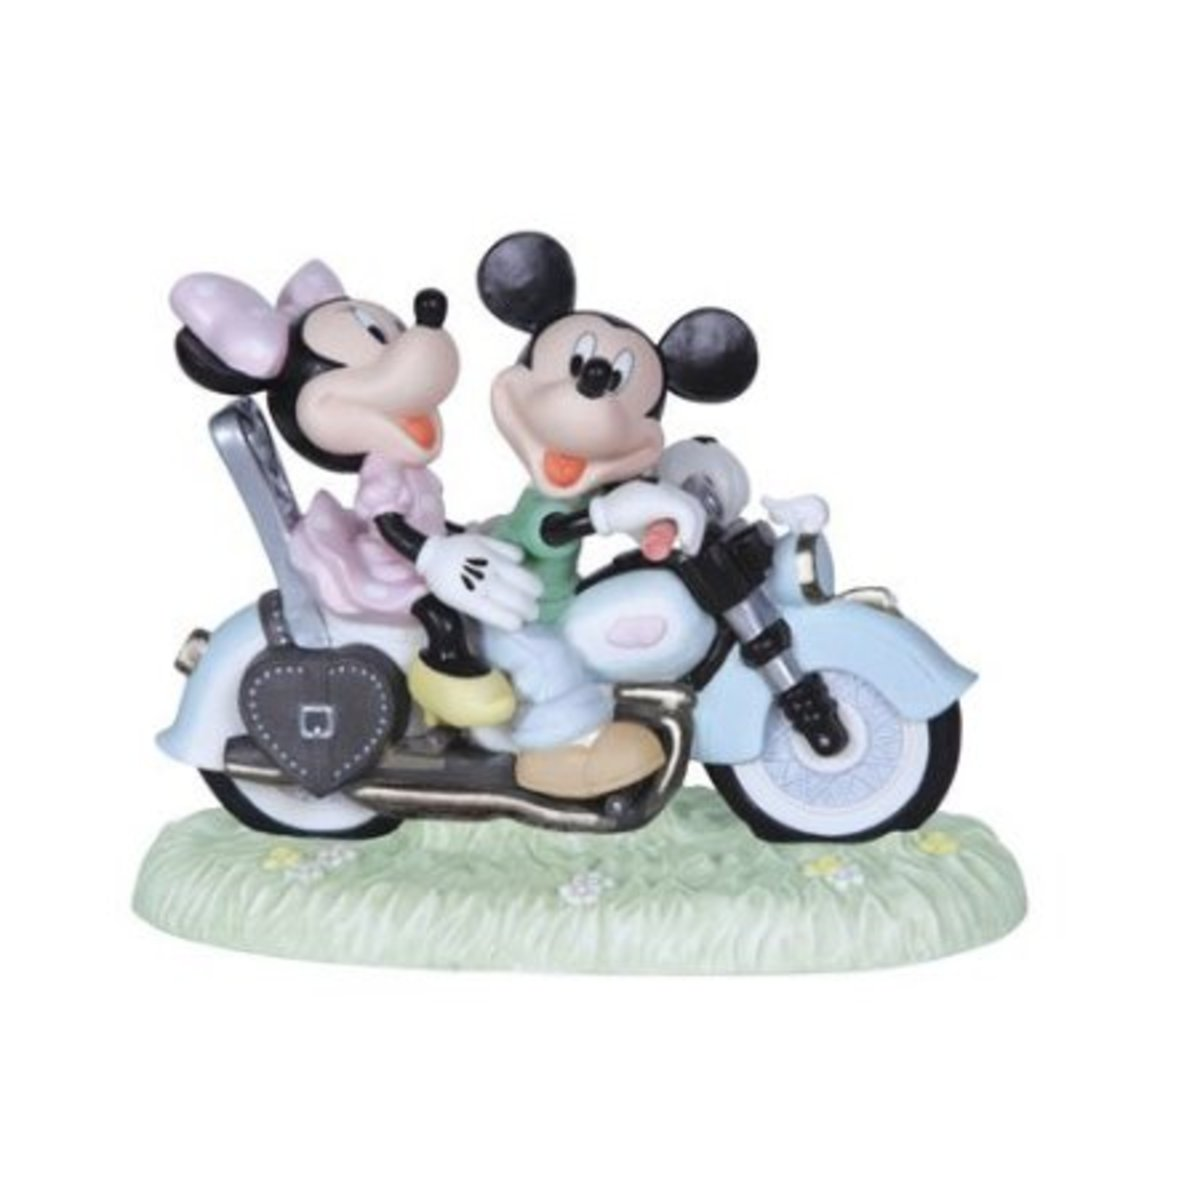 Off to the same journey - Mickey and Minnie